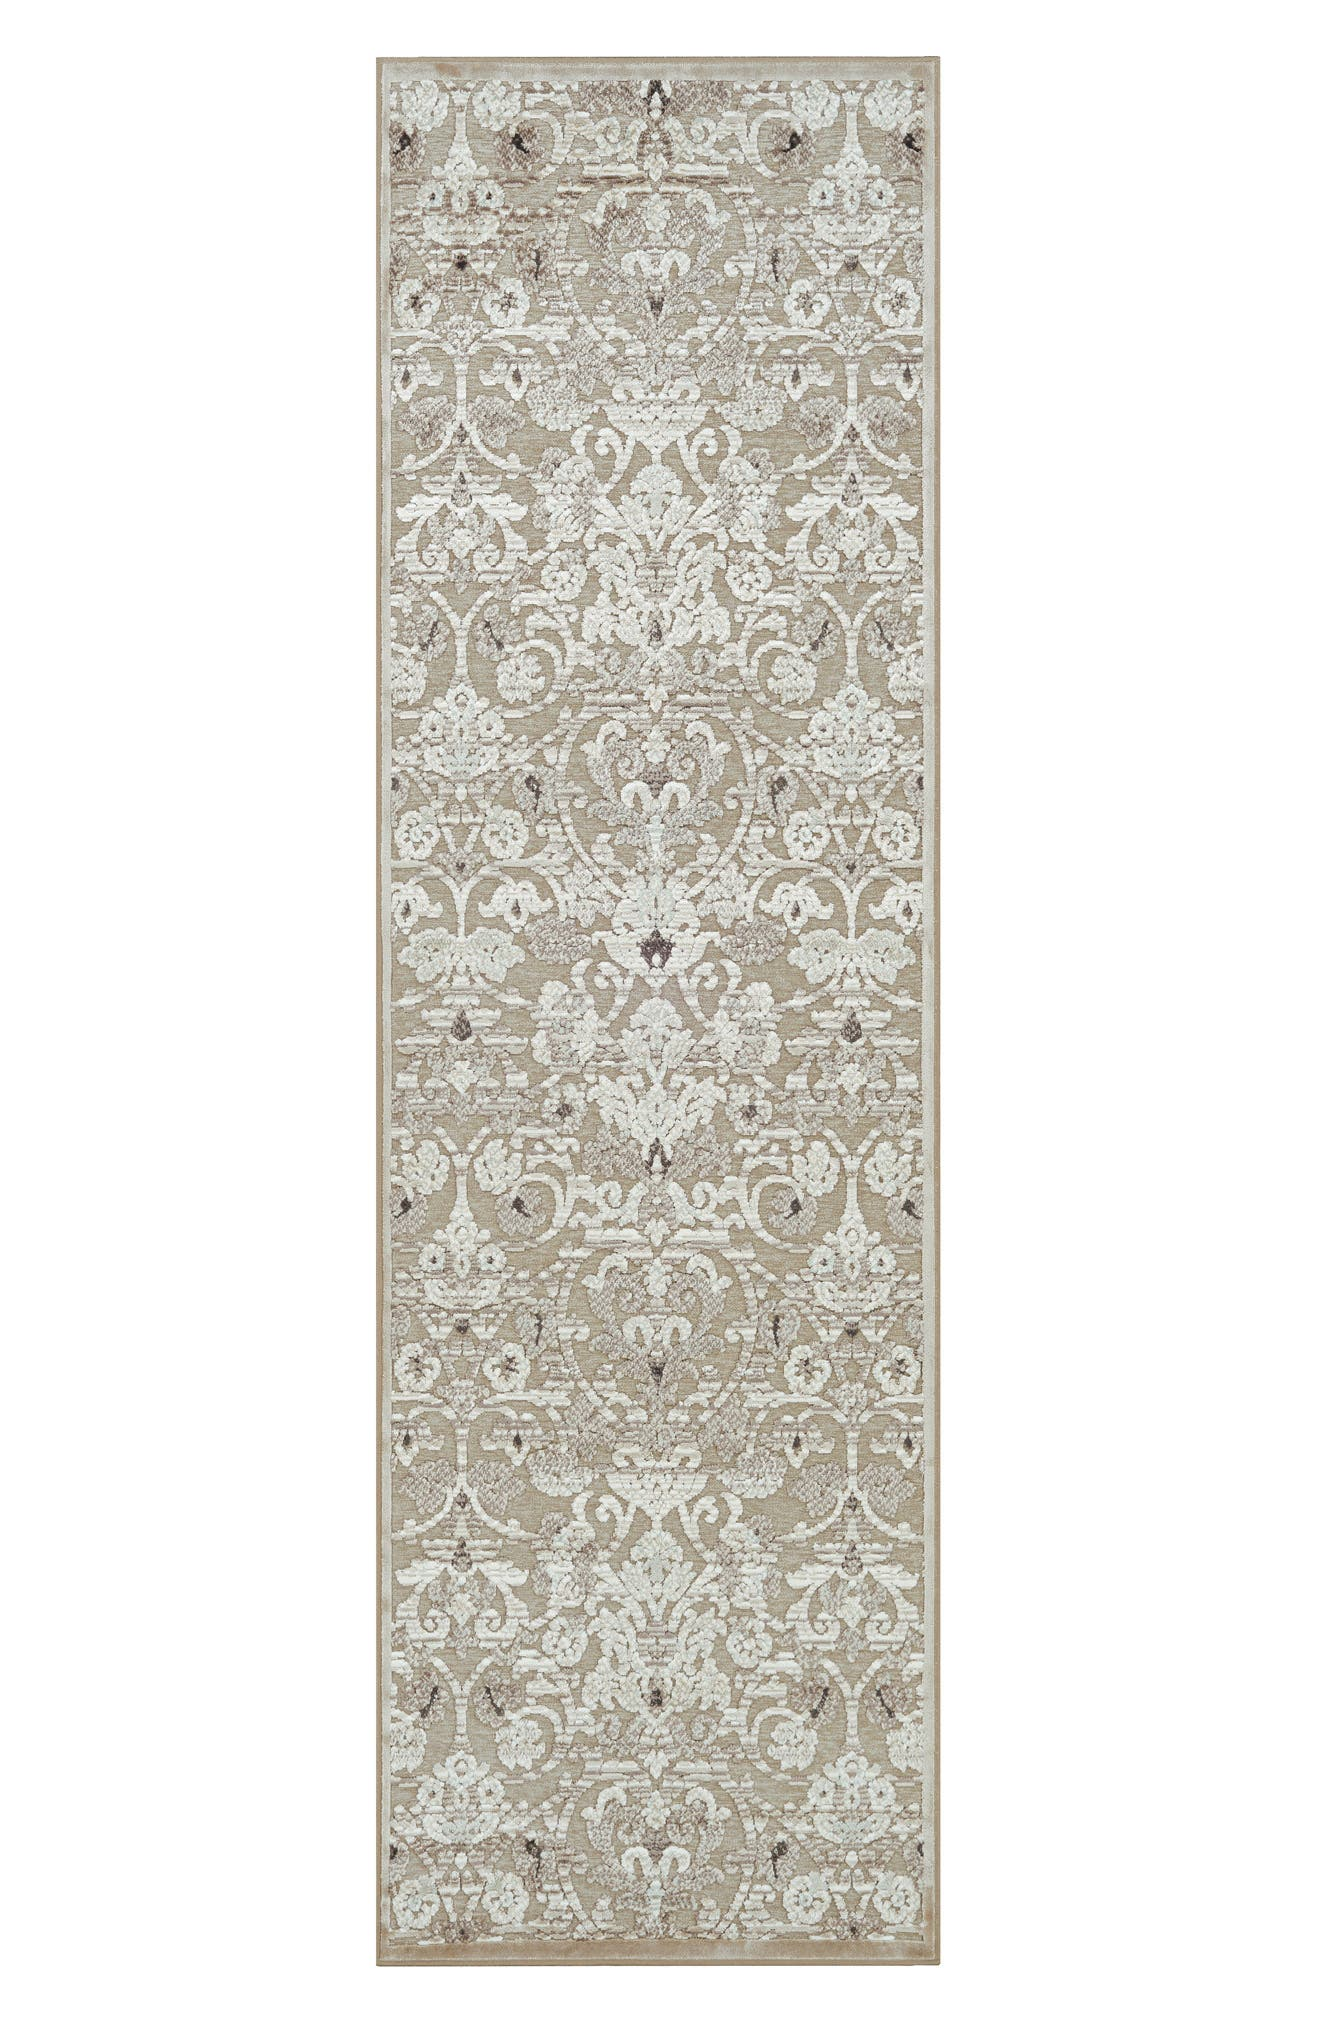 Cire Aurora Regal Area Rug,                             Alternate thumbnail 2, color,                             250